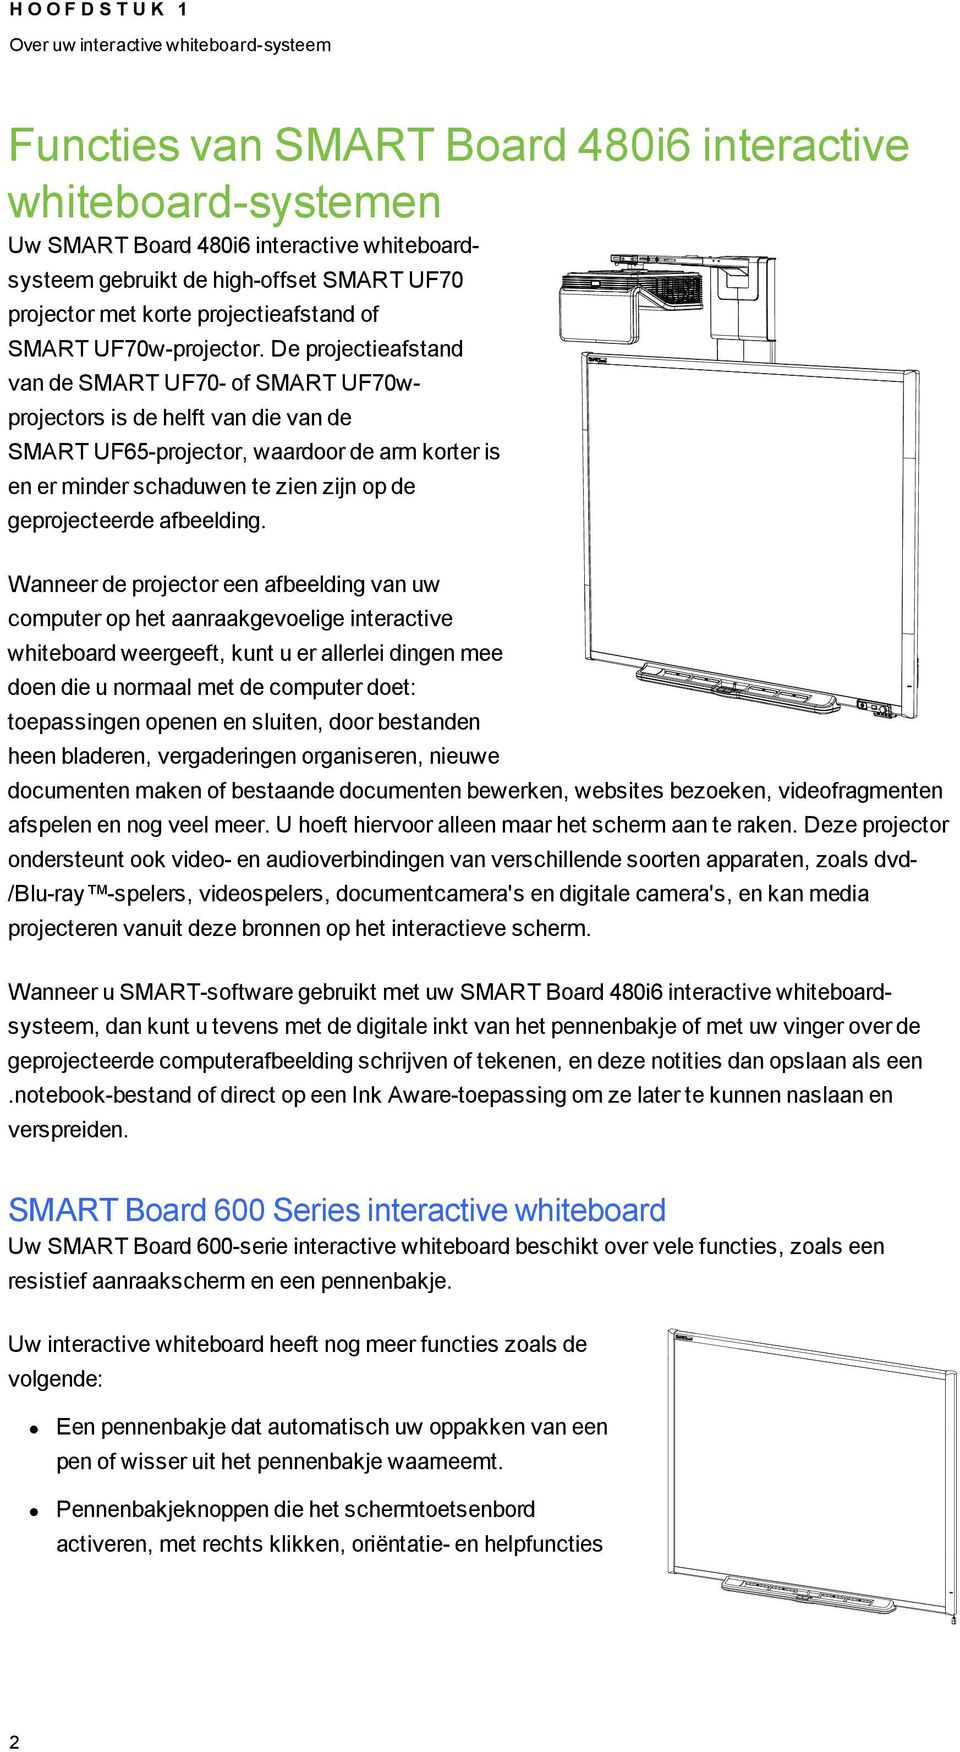 De projectieafstand van de SMART UF70- of SMART UF70wprojectors is de helft van die van de SMART UF65-projector, waardoor de arm korter is en er minder schaduwen te zien zijn op de geprojecteerde